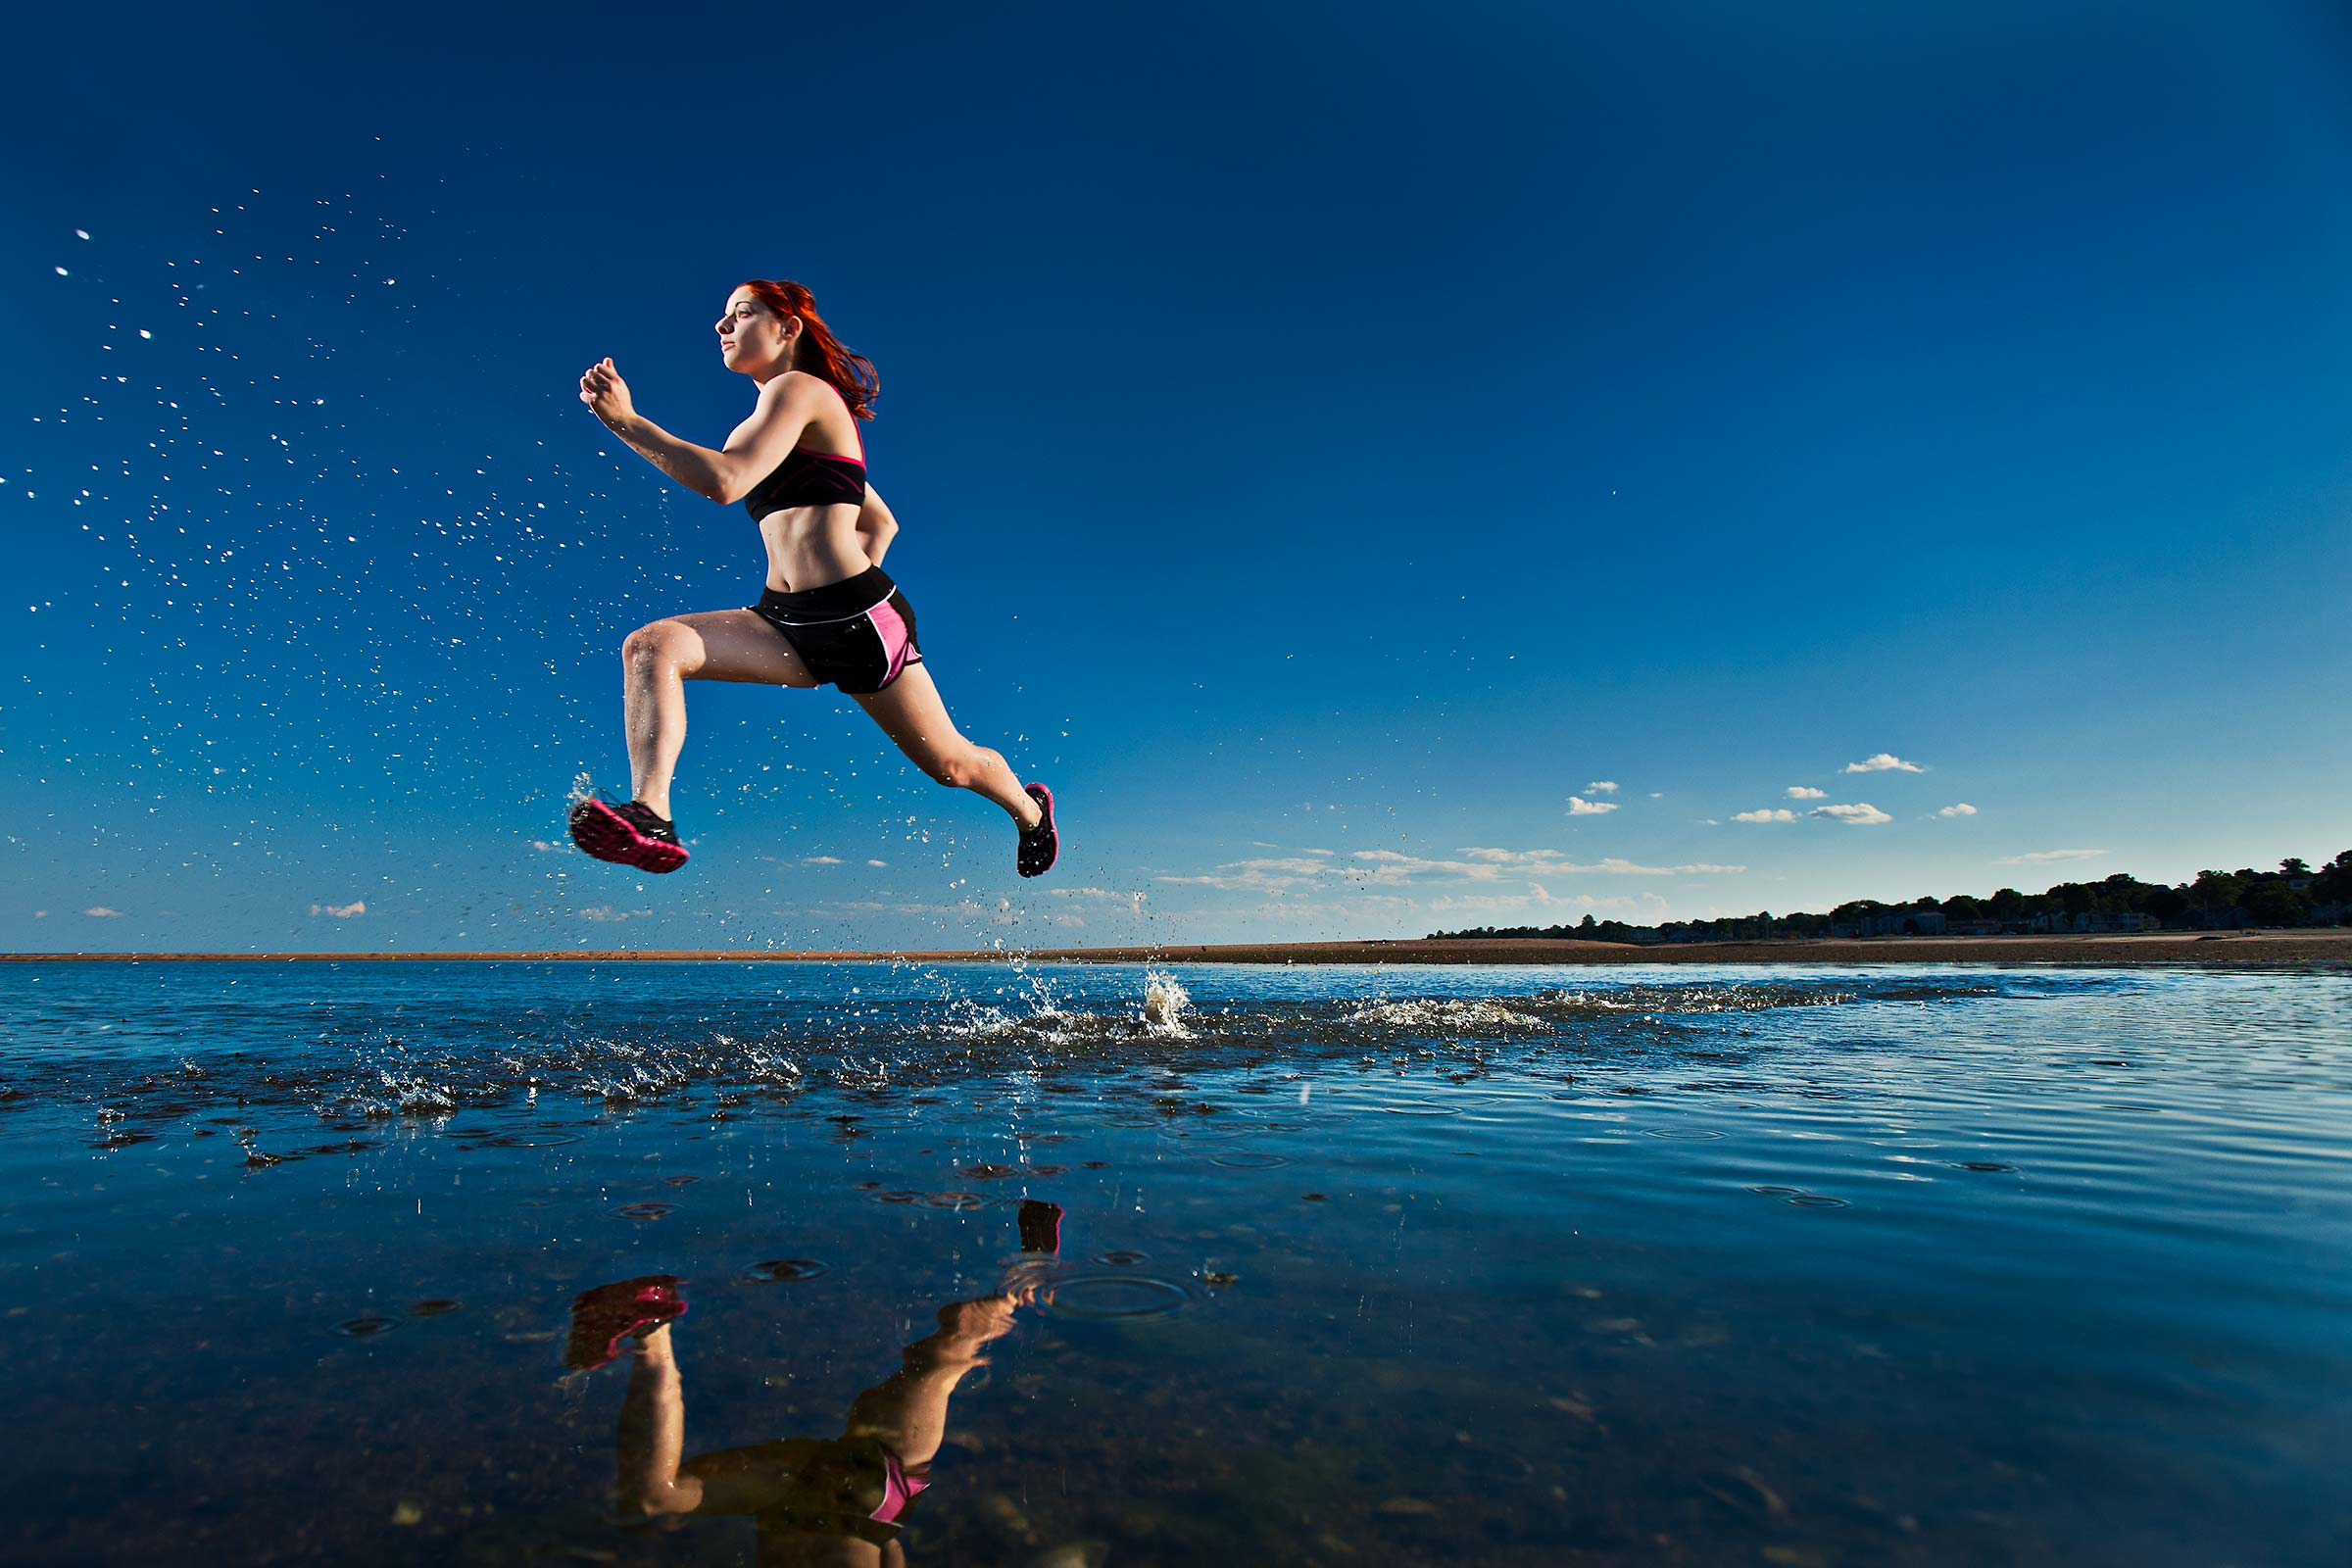 a young female runner kicks up a spray of water while running on a Connecticut beach